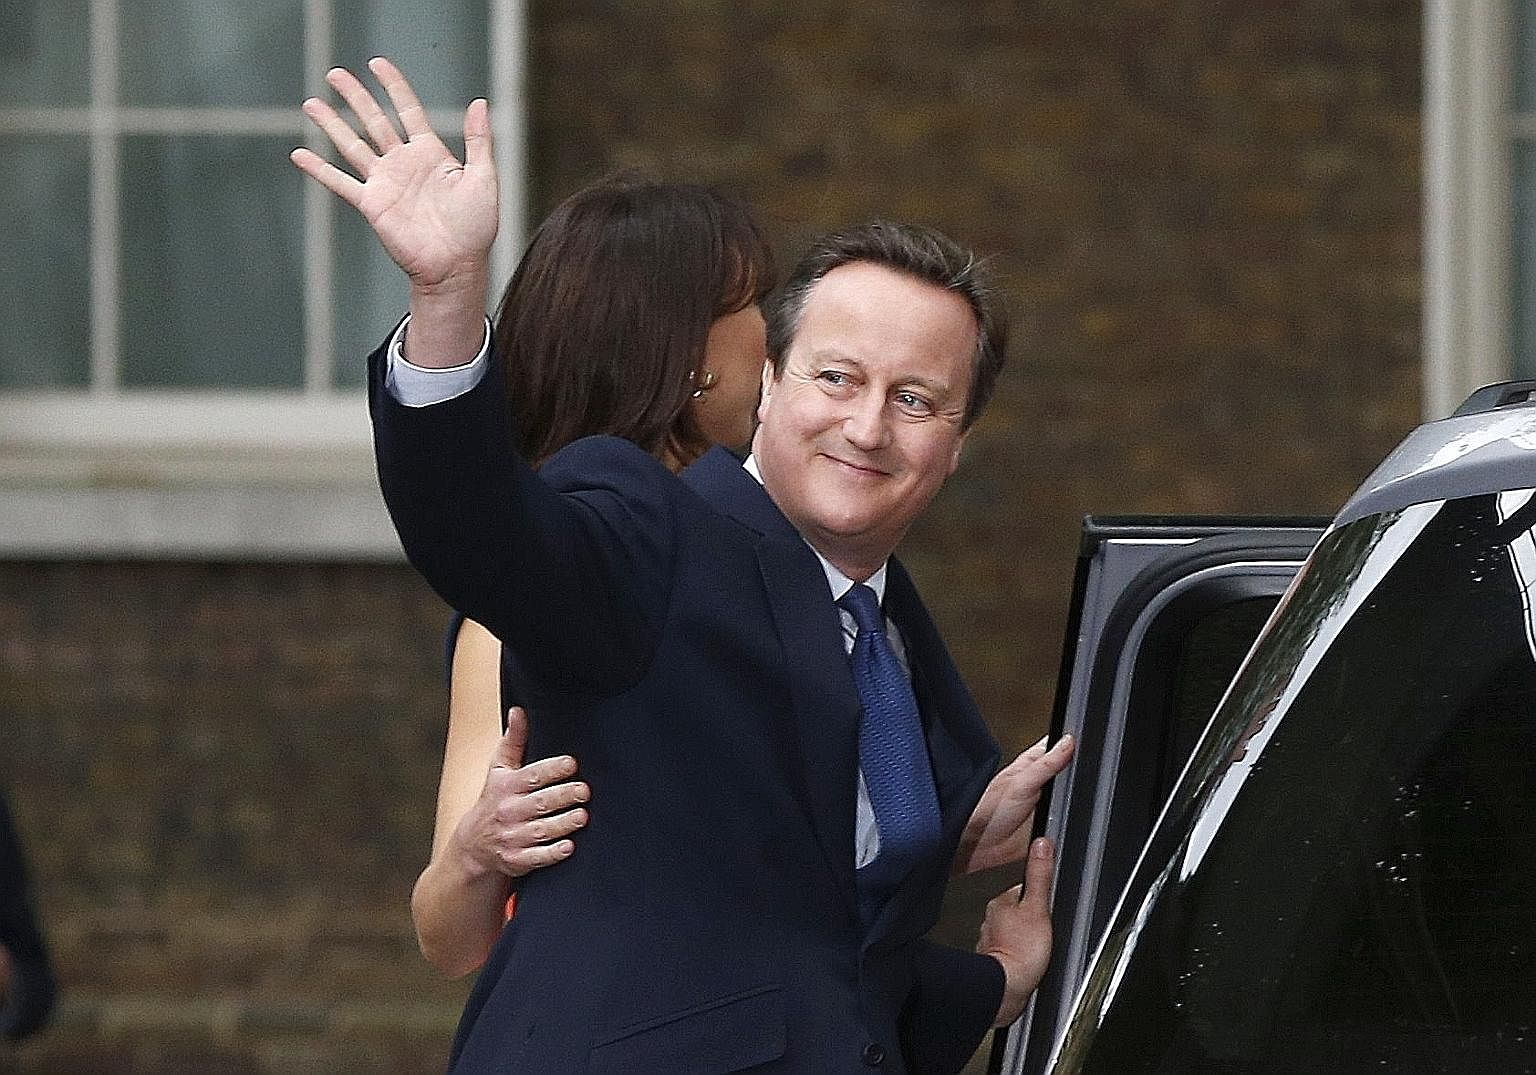 Briferendum Aftermath Series David Cameron resigns from parliament